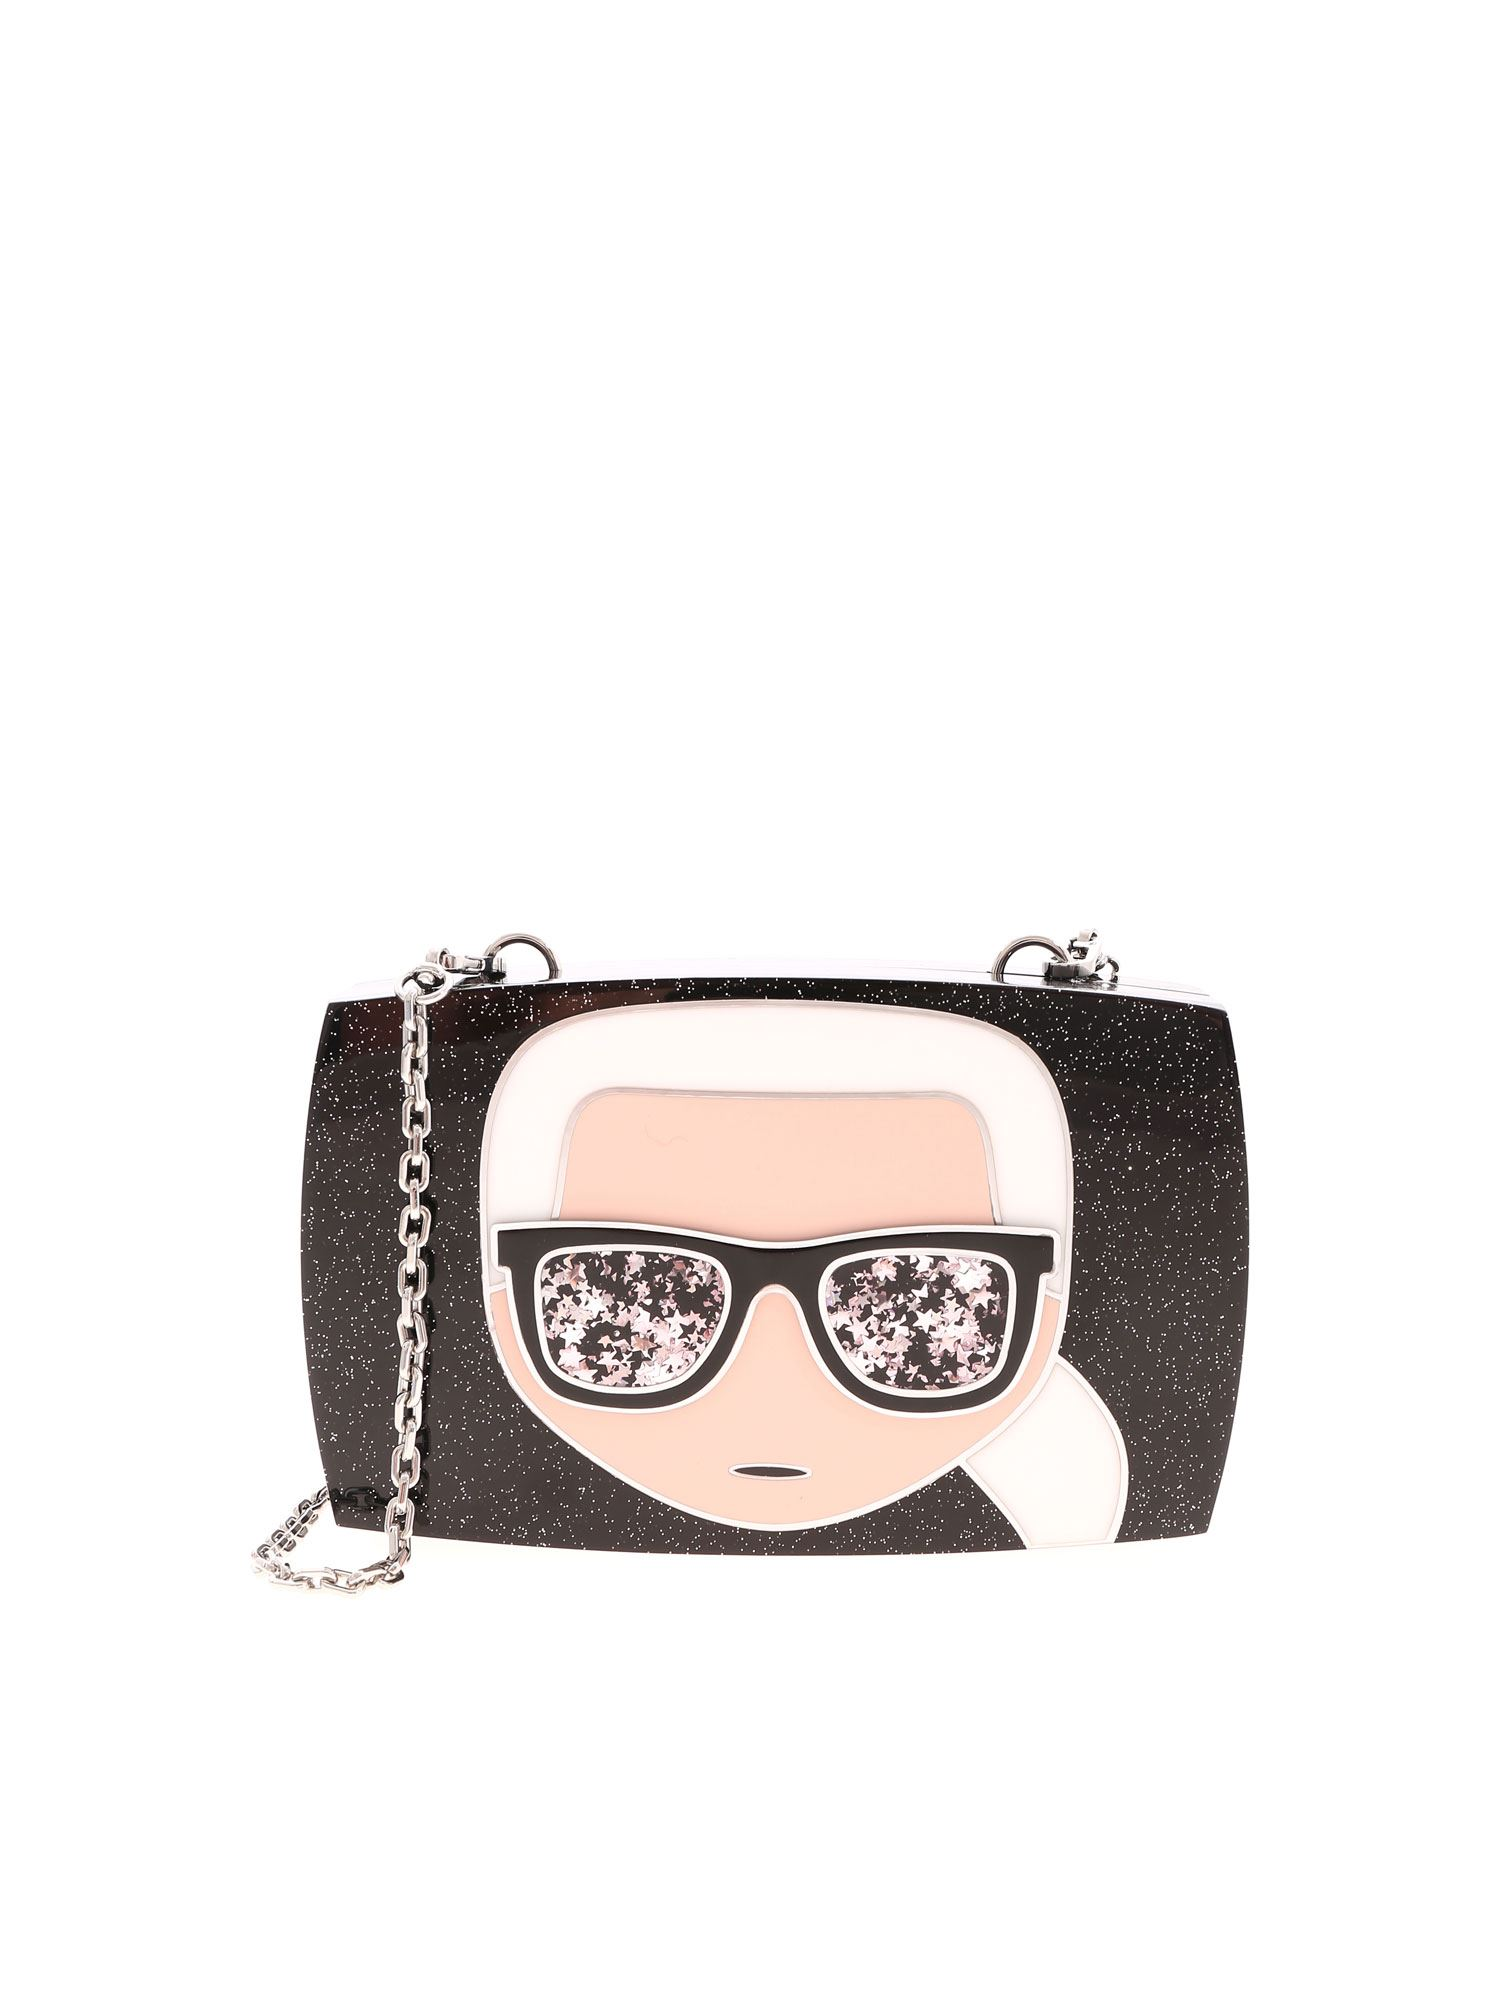 Karl Lagerfeld IKONIC KARL MINAUDIERE BAG IN BLACK